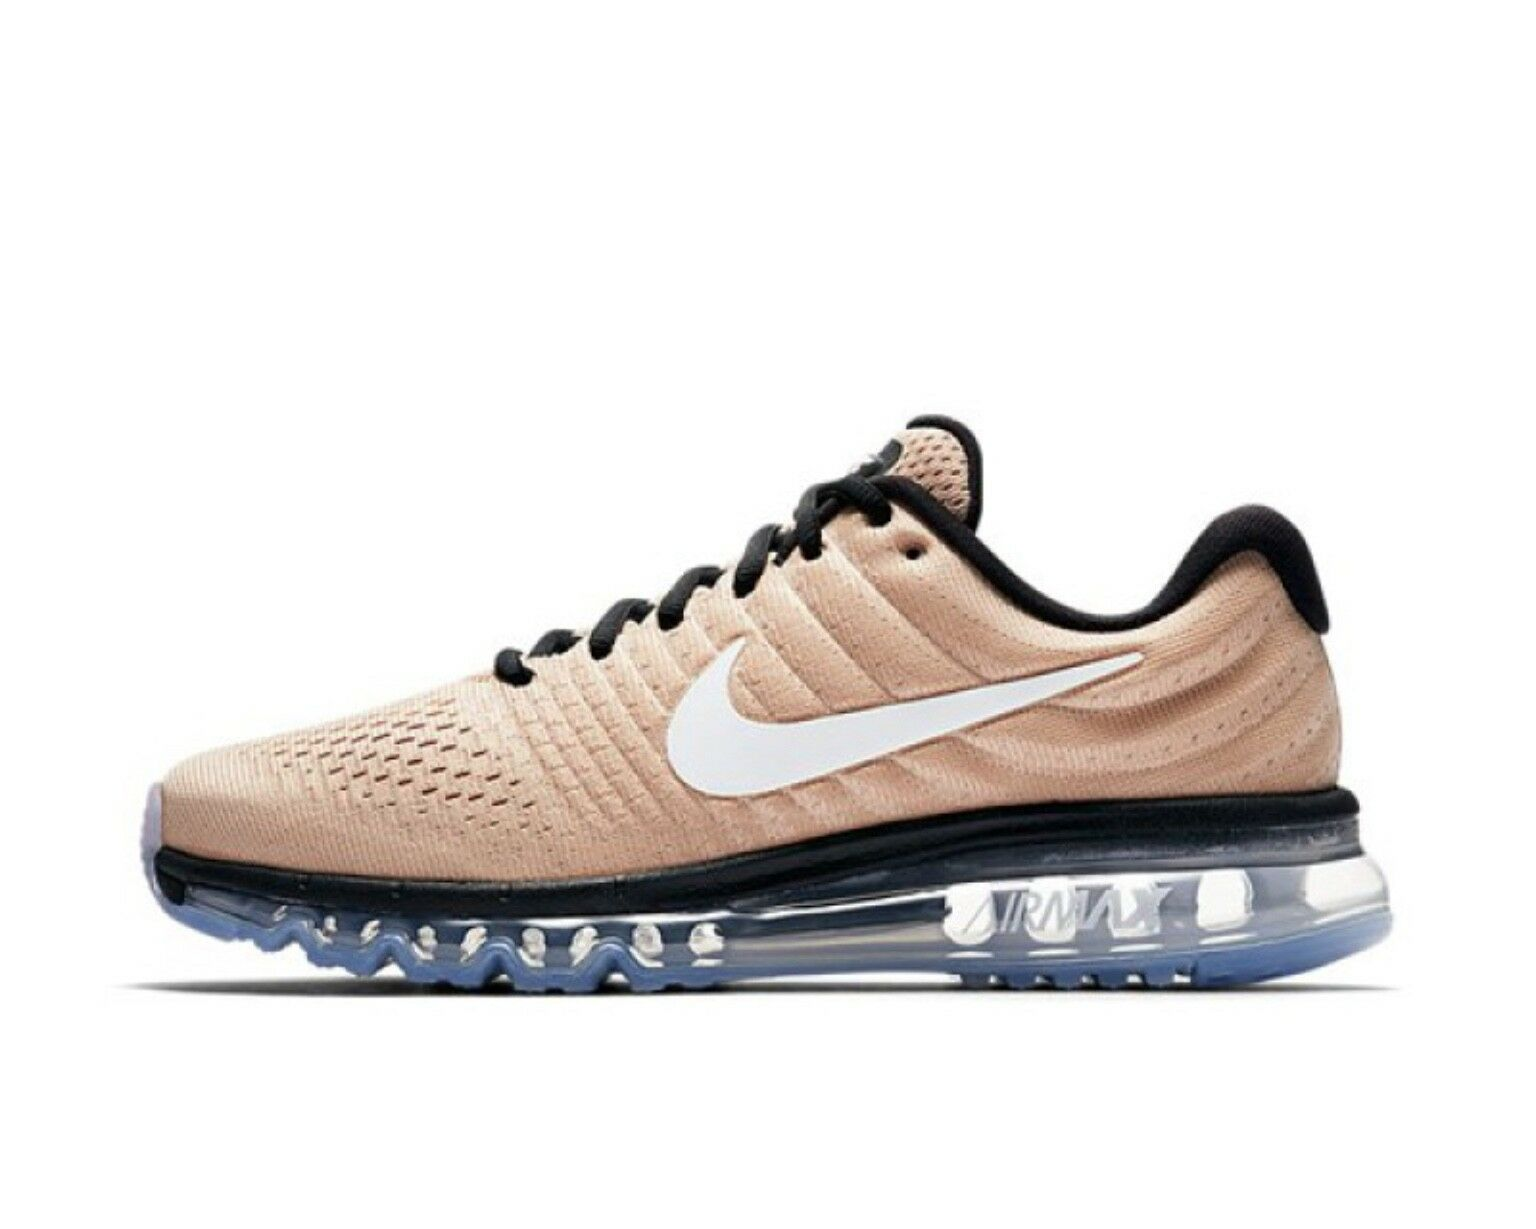 Nike Air Max 2017 Mens Running Trainer shoes UK7 EU41 US8  -  849559 200